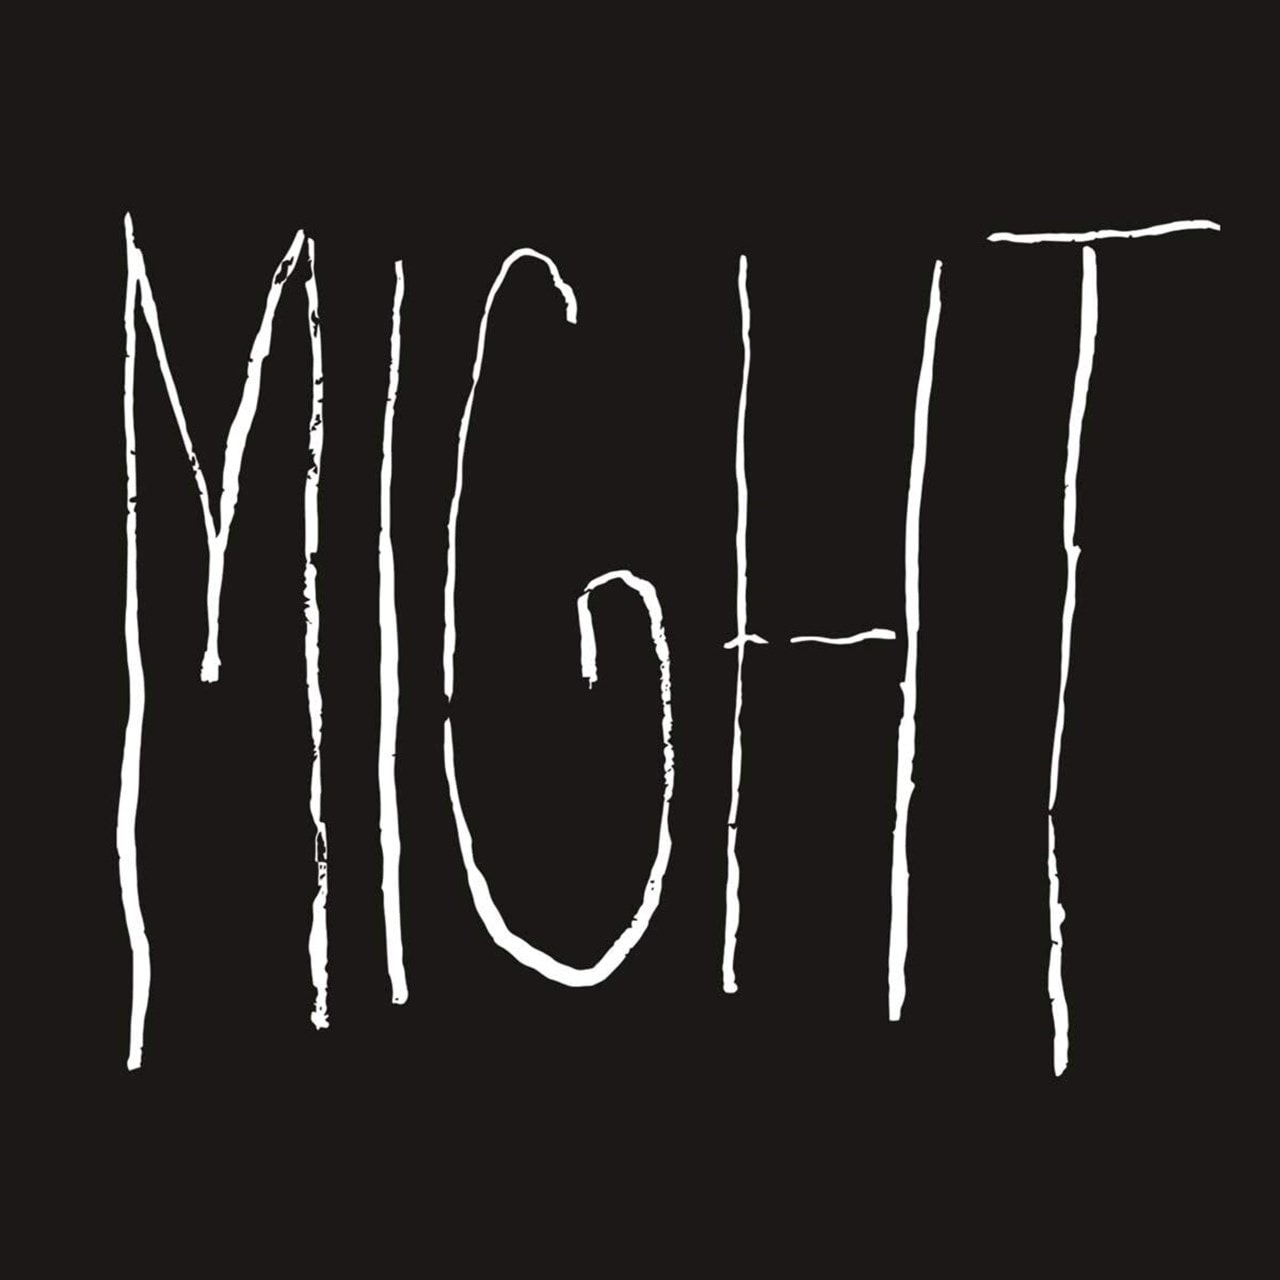 Might - 1